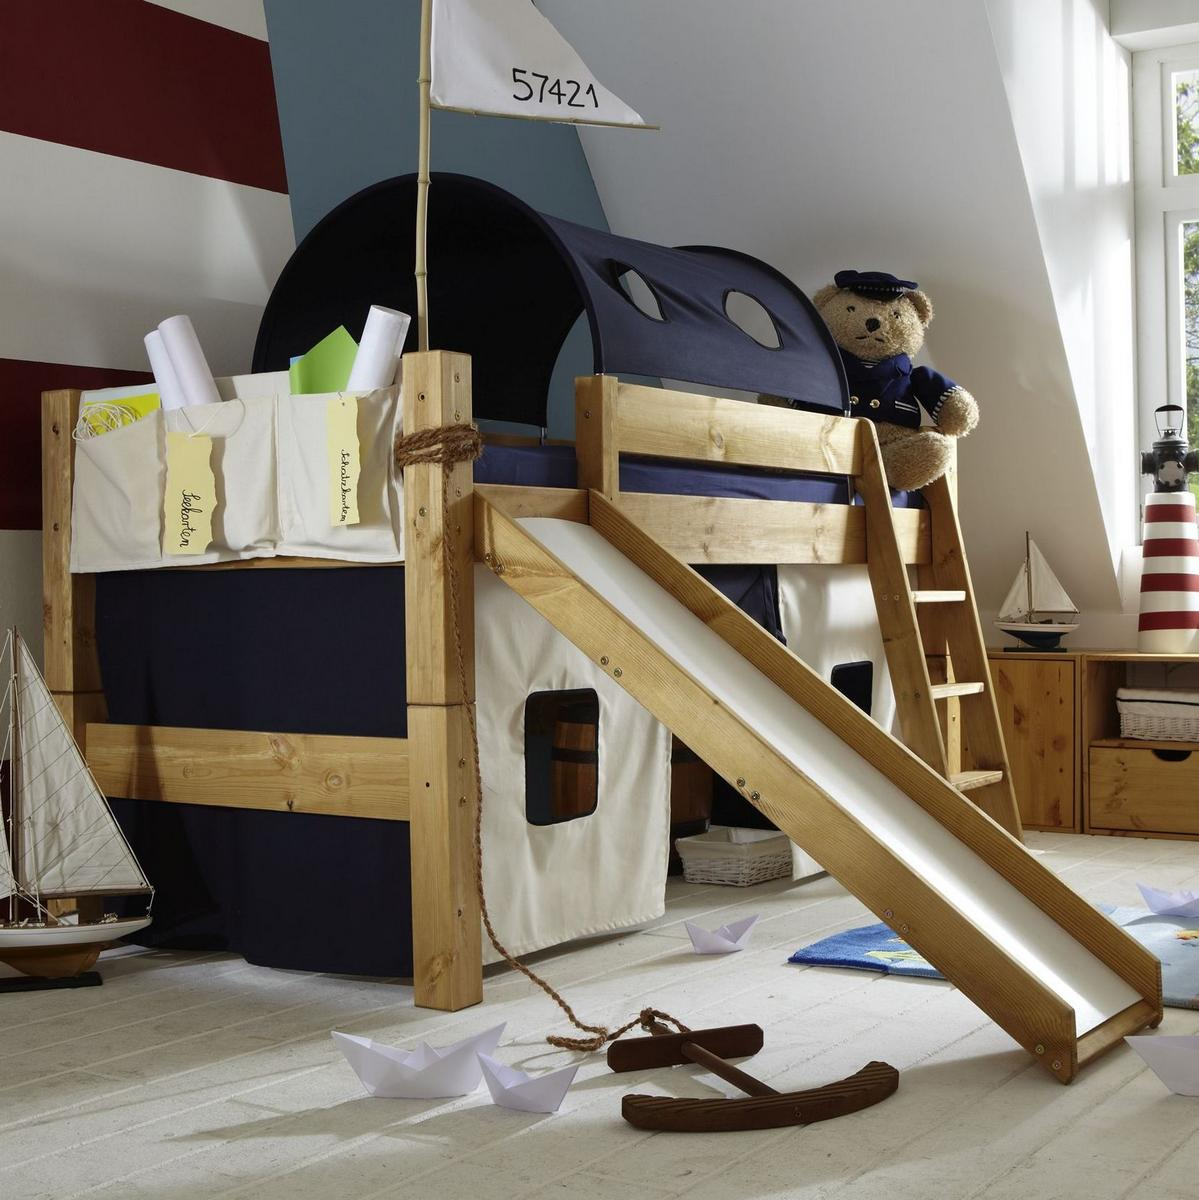 hochbett spielbett mit rutsche tobykids kiefer massiv gelaugt ge lt natur lackiert marine natur. Black Bedroom Furniture Sets. Home Design Ideas